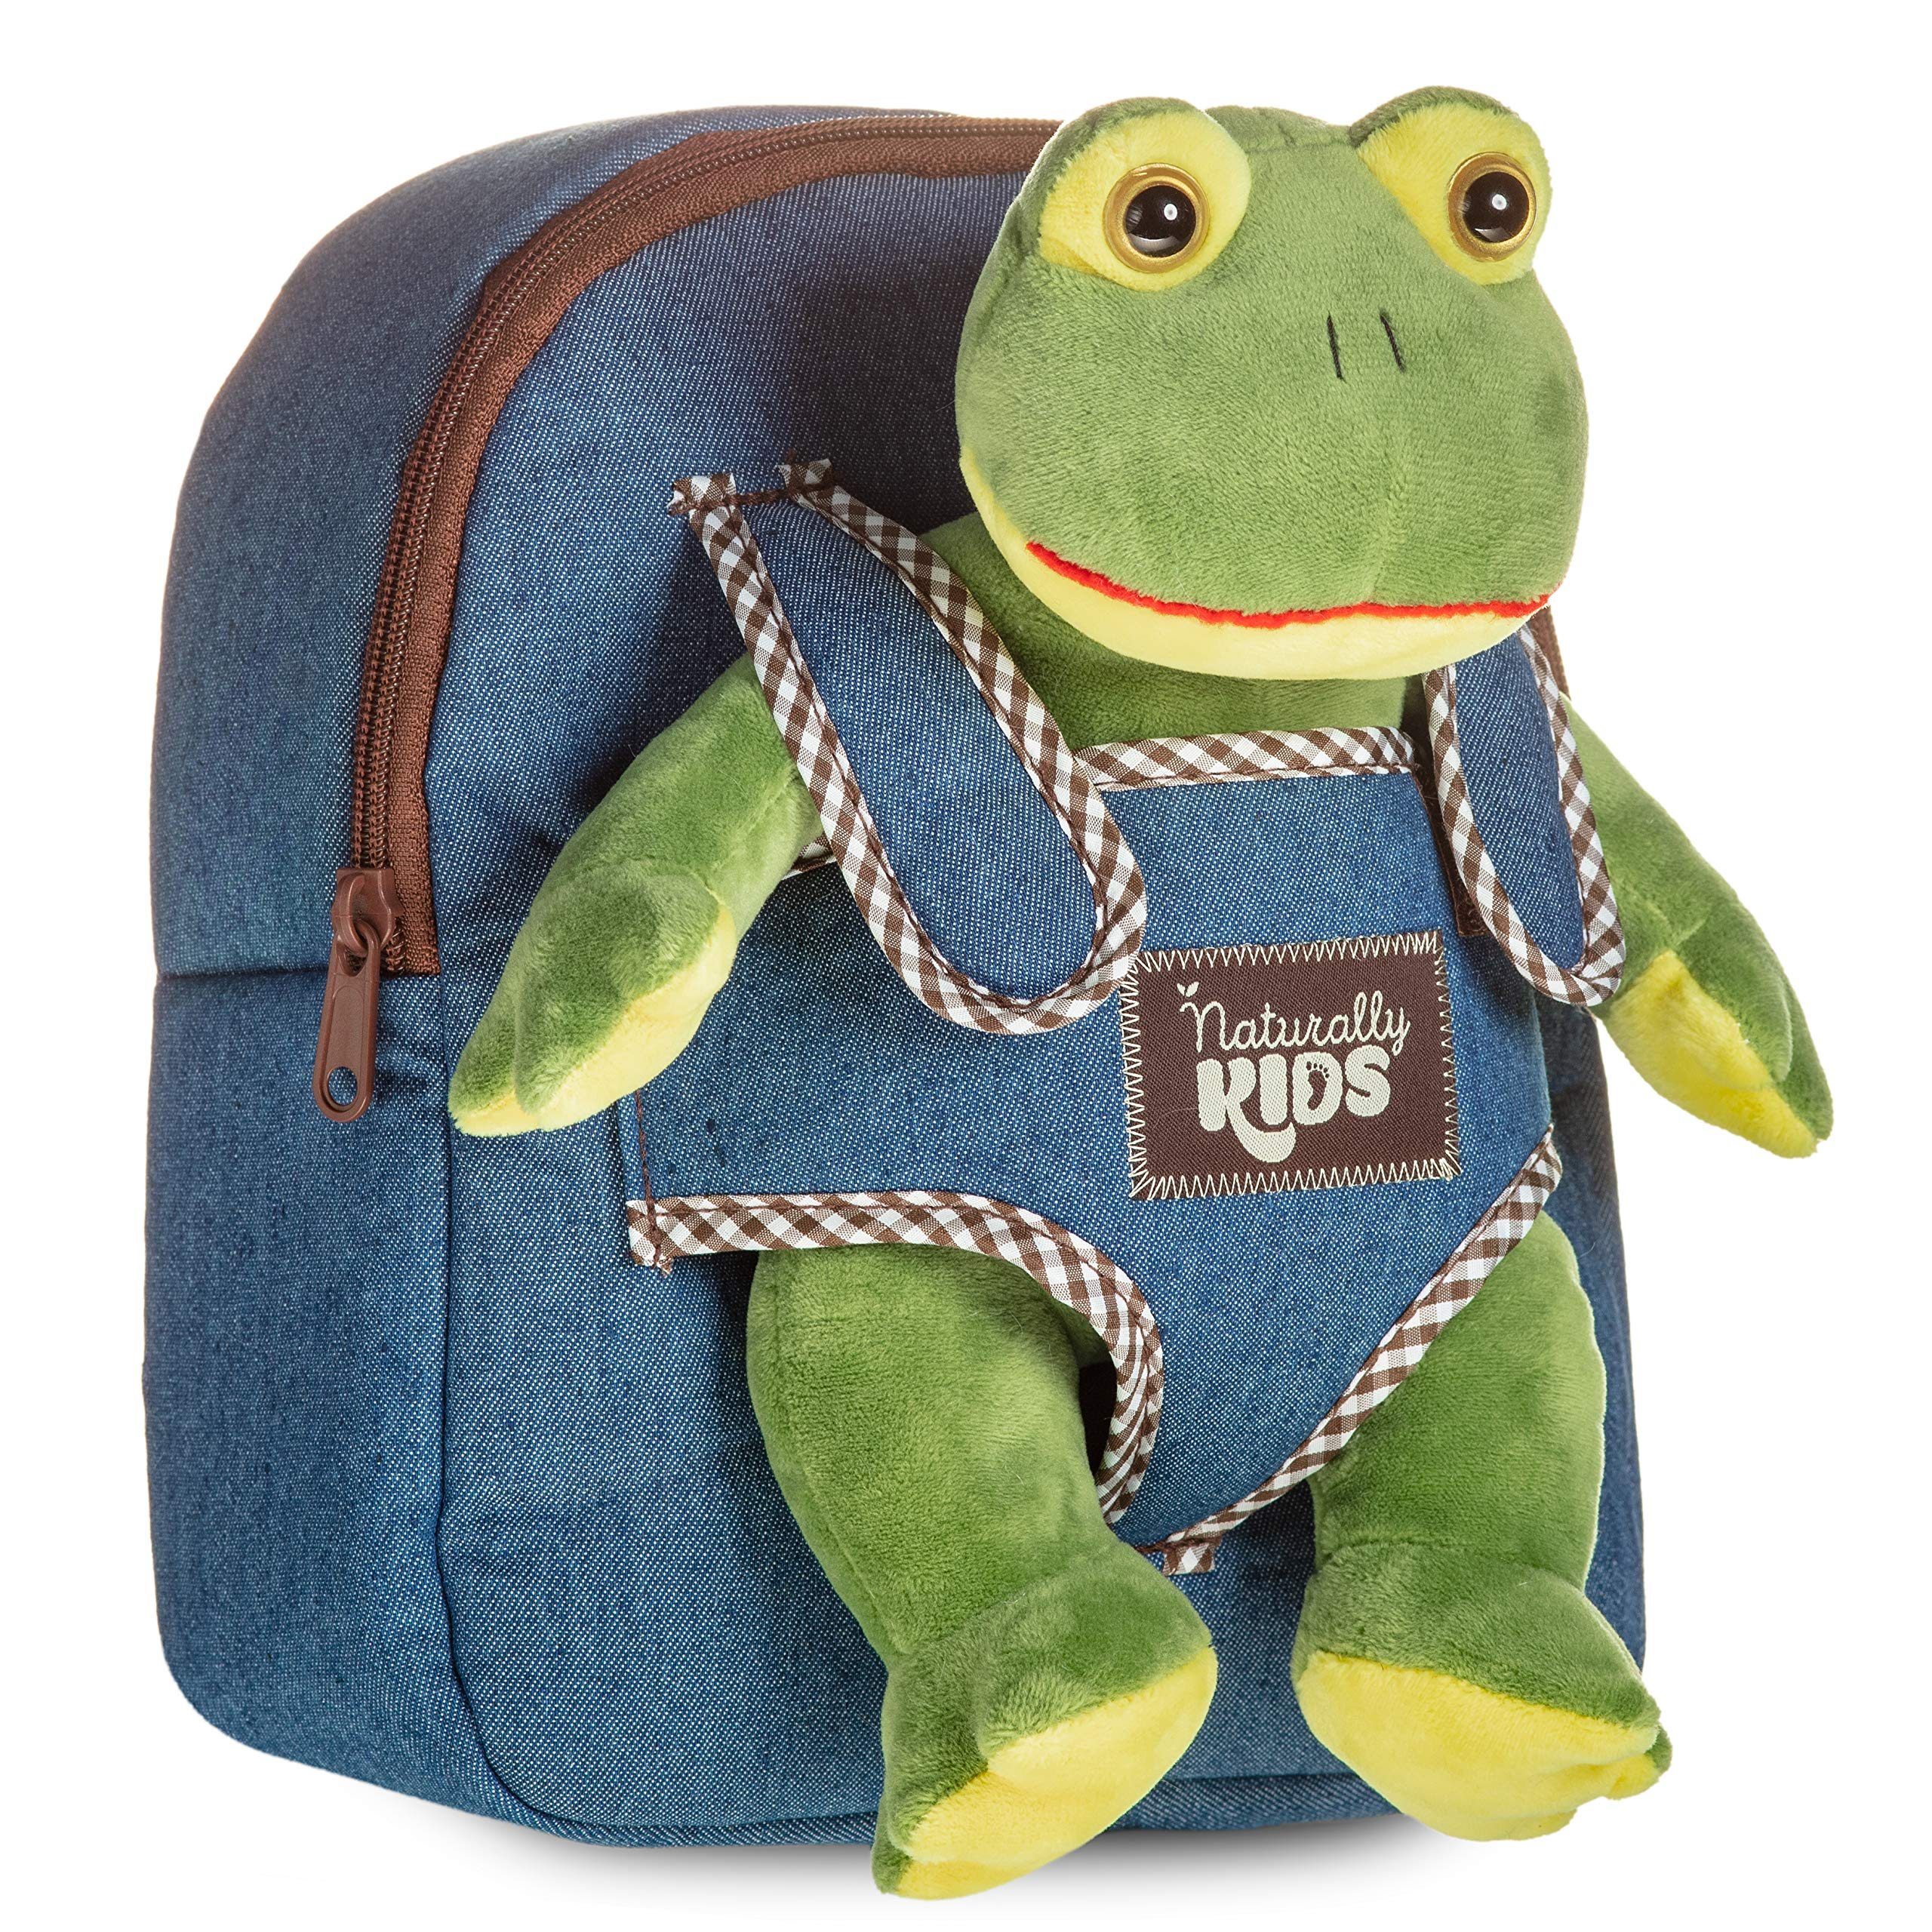 Denim Backpack with Frog for Boys & Girls - Small Backpacks with Plush Toy for Girl & Boy w. Huggable Soft Plush Frog - Lovely Gift for Toddler 3 4 5-10 Year Old Child Adjustable Straps Fit Any Age